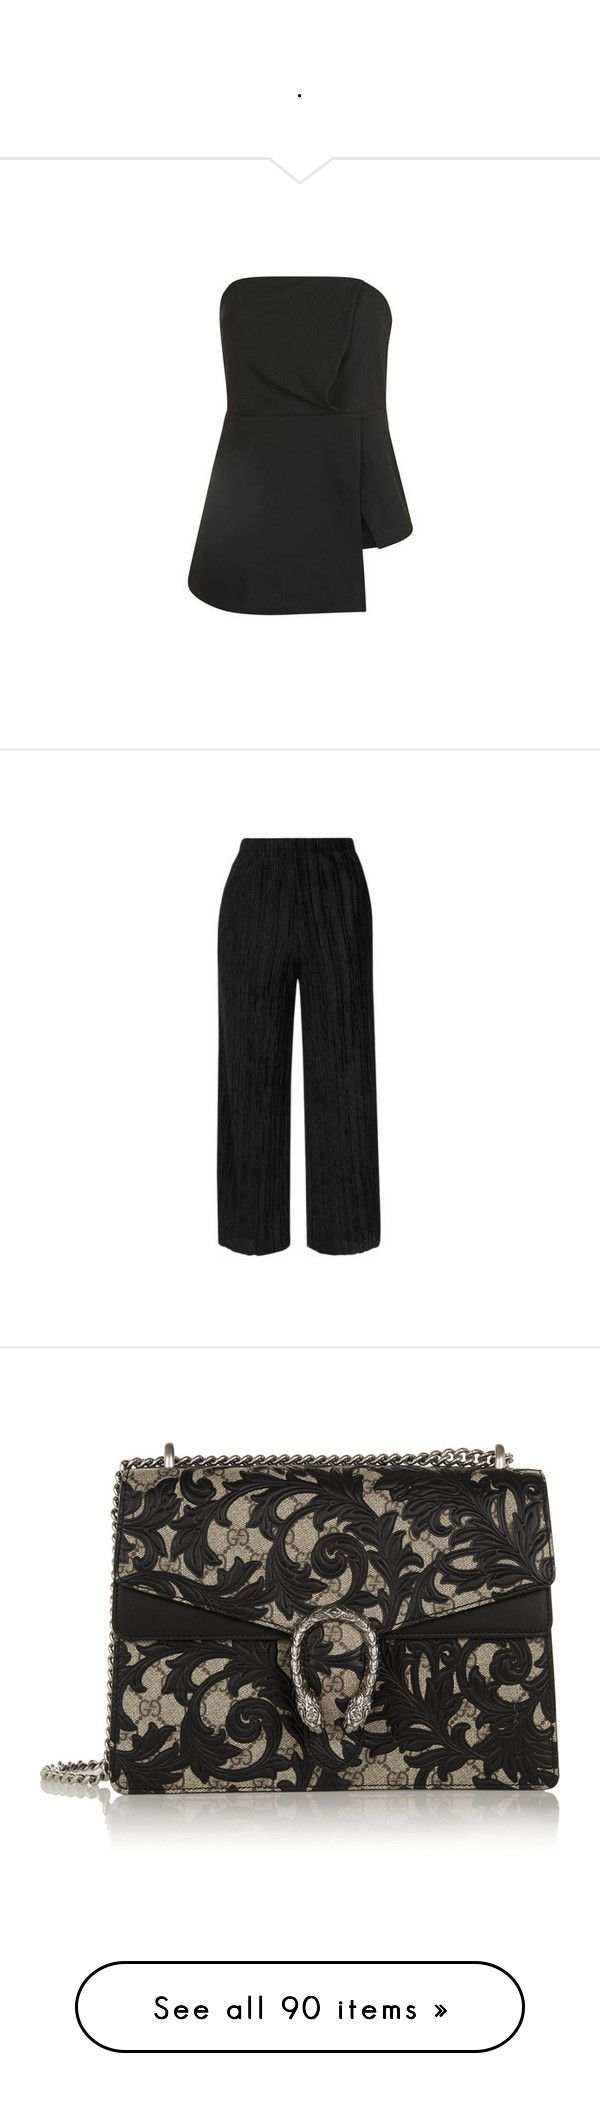 """."" by bappple ❤ liked on Polyvore featuring black, bandeau bikini top, bandeau tops, pants, pleated pants, velvet trousers, velvet pants, pleated trousers, topshop pants and bags"